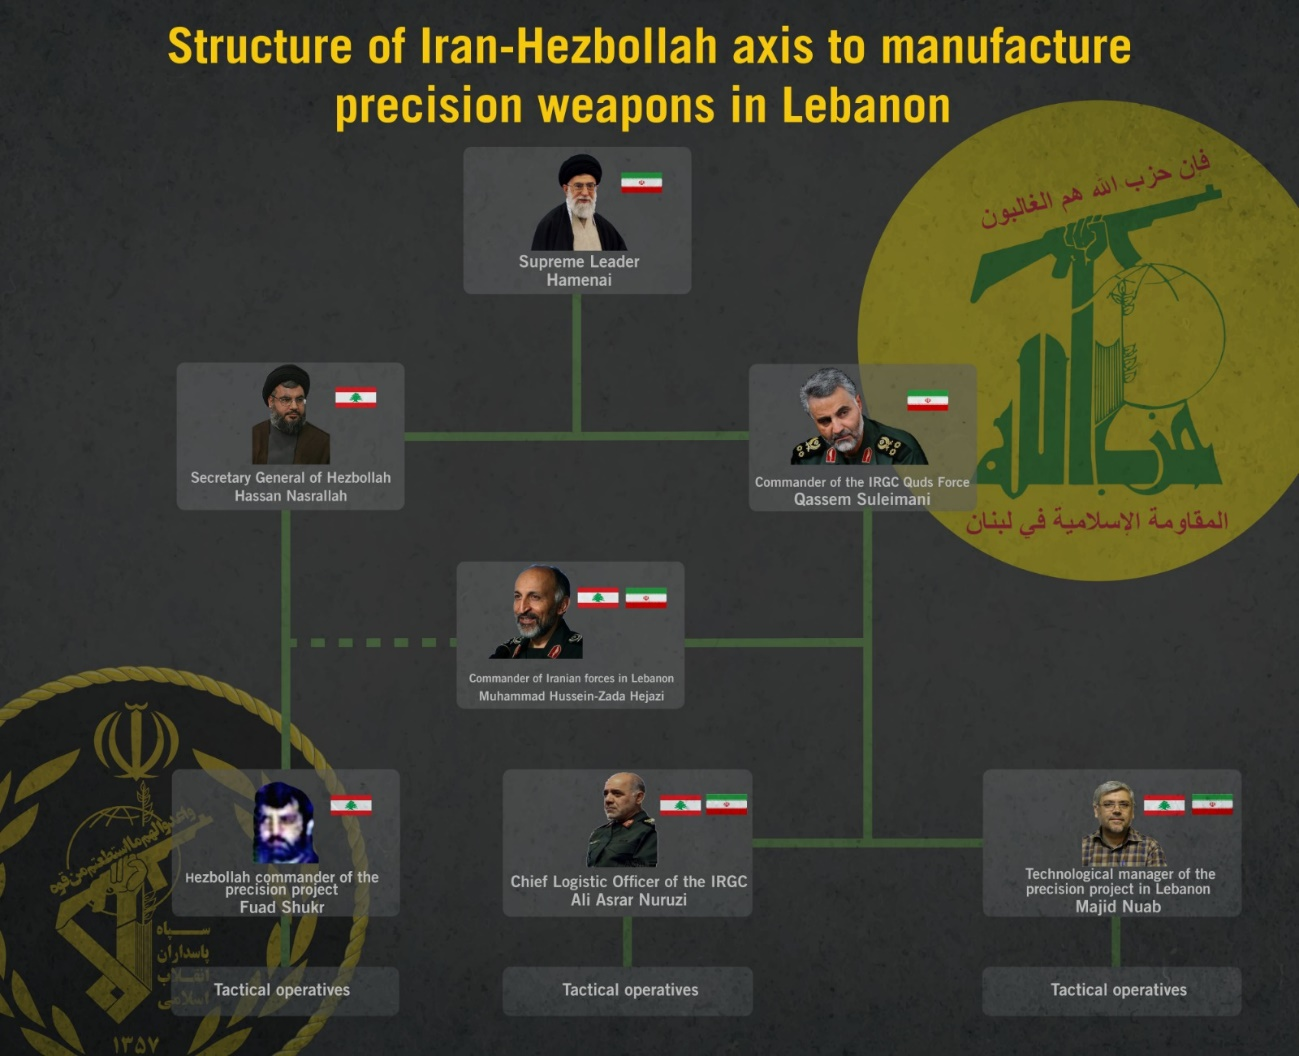 Senior Iranian officials leading the project to increase the precision of Hezbollah's missiles in Lebanon. At the center is Mohammad Hossein-Zadeh Hejazi (IDF website, August 29, 2019).